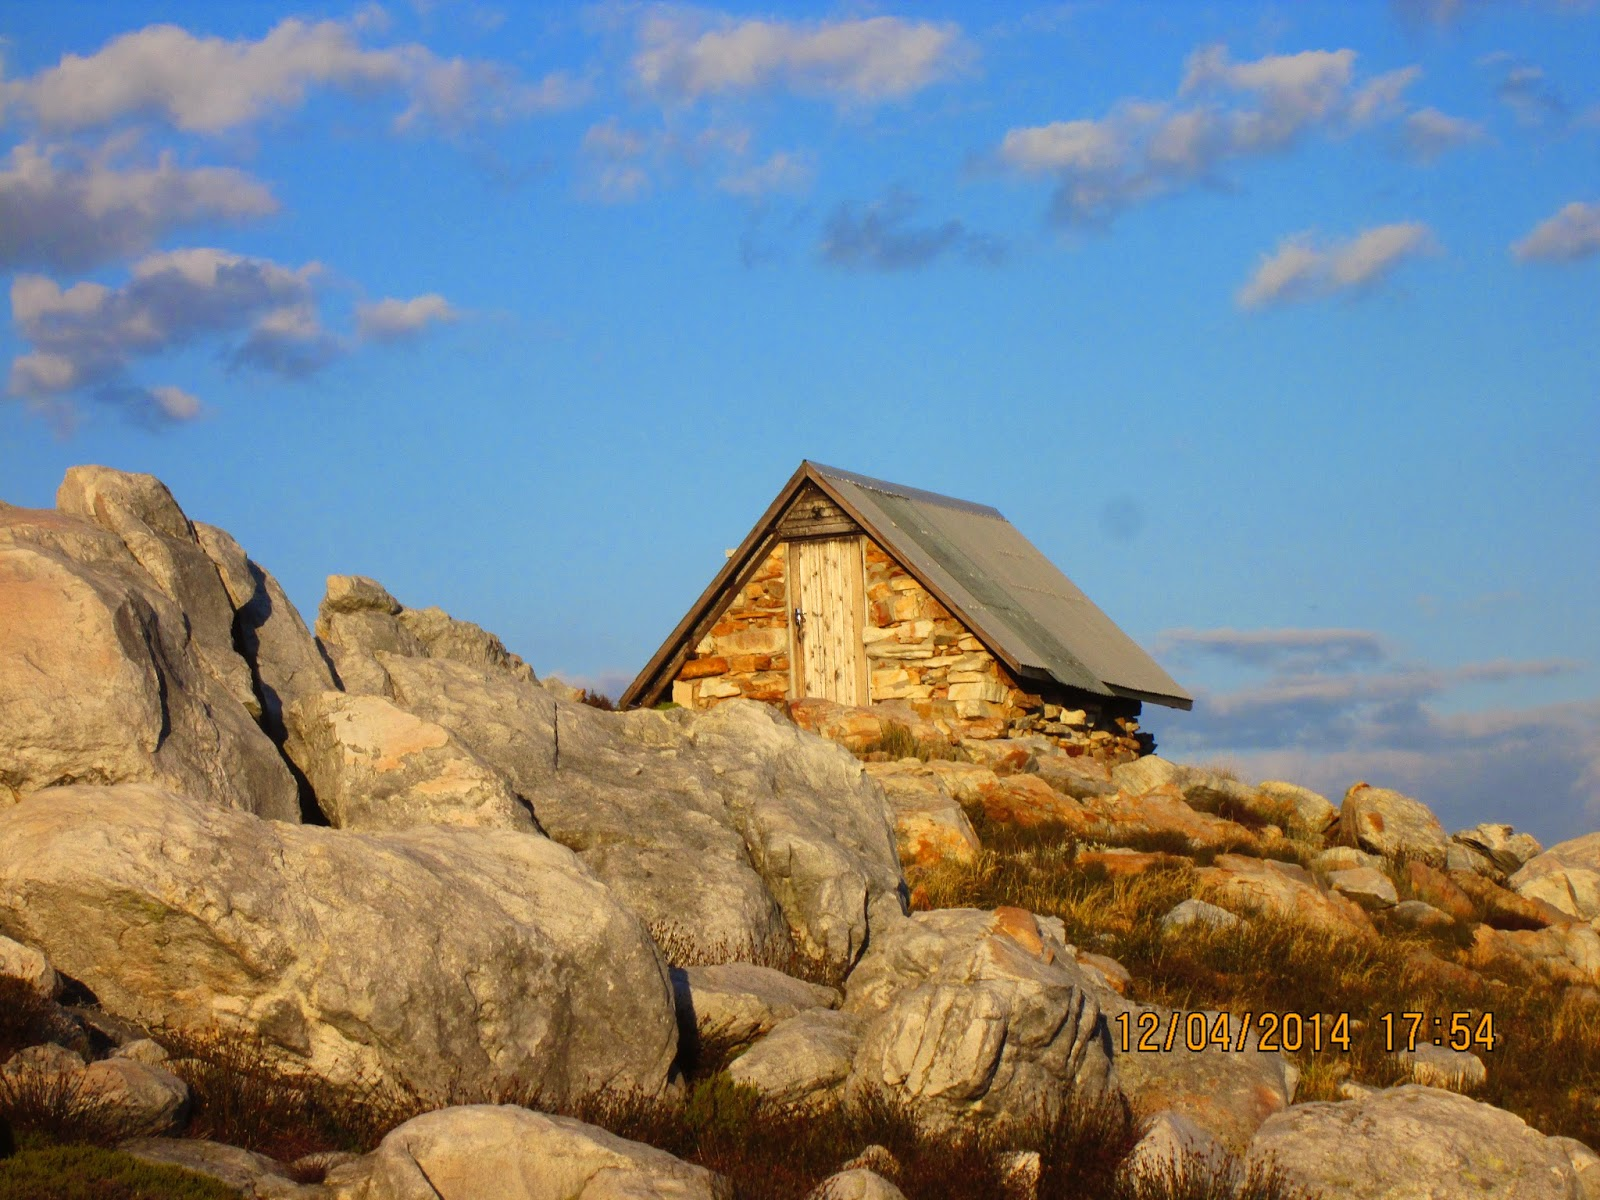 Hut on top of a mountain with rocks in front